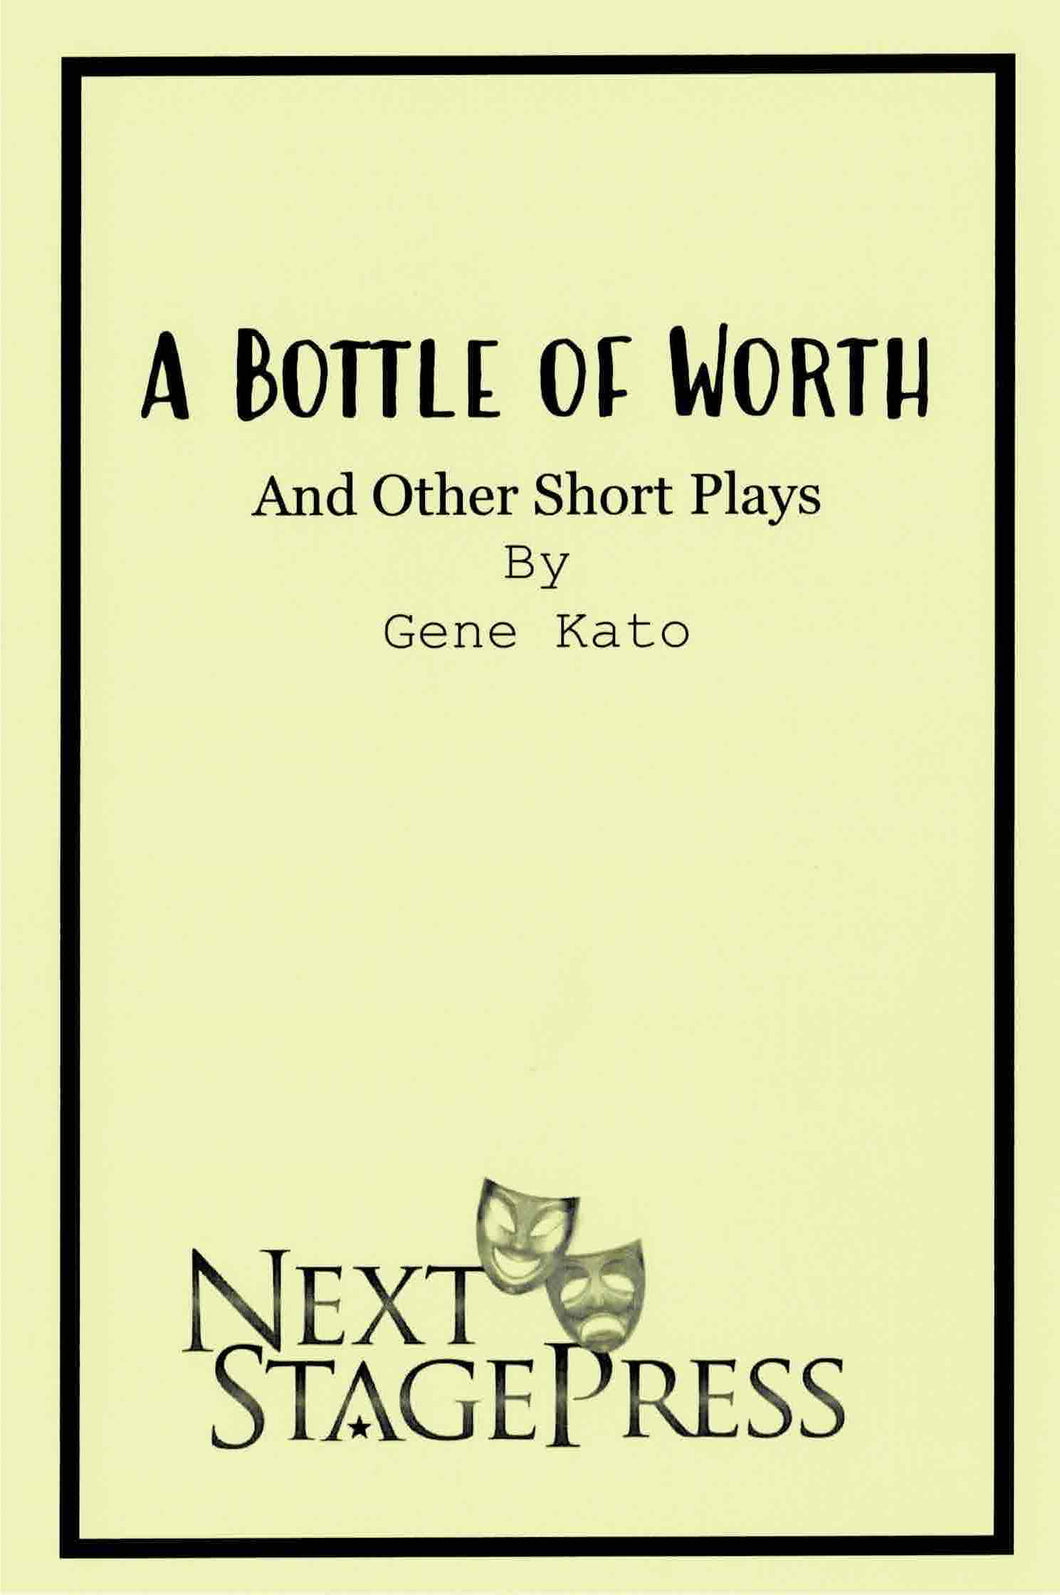 A Bottle of Worth and Other Short Plays